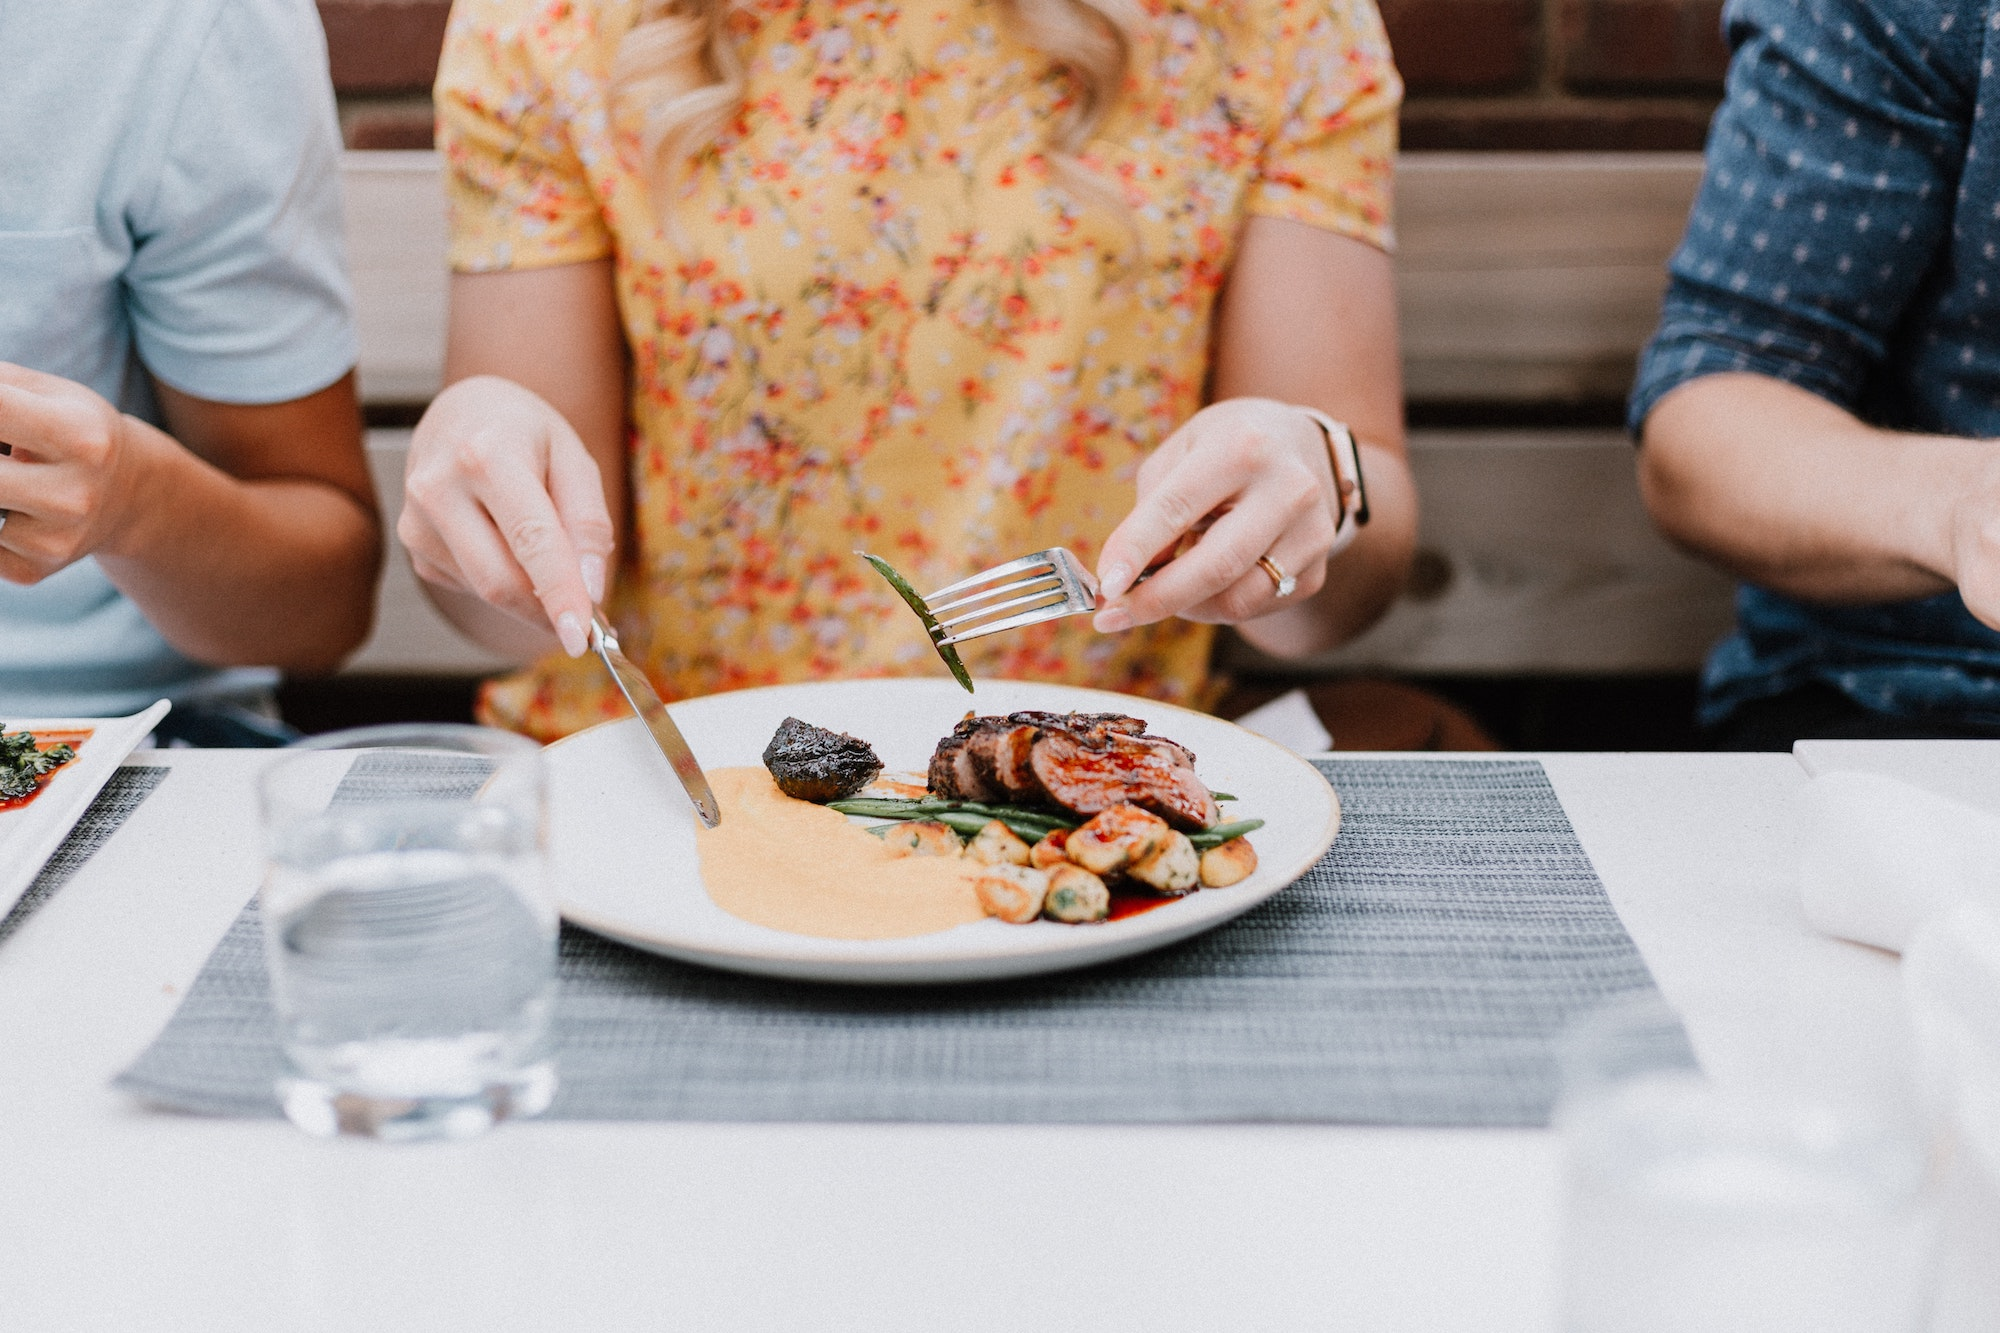 How to Dine Out With Hypothyroidism